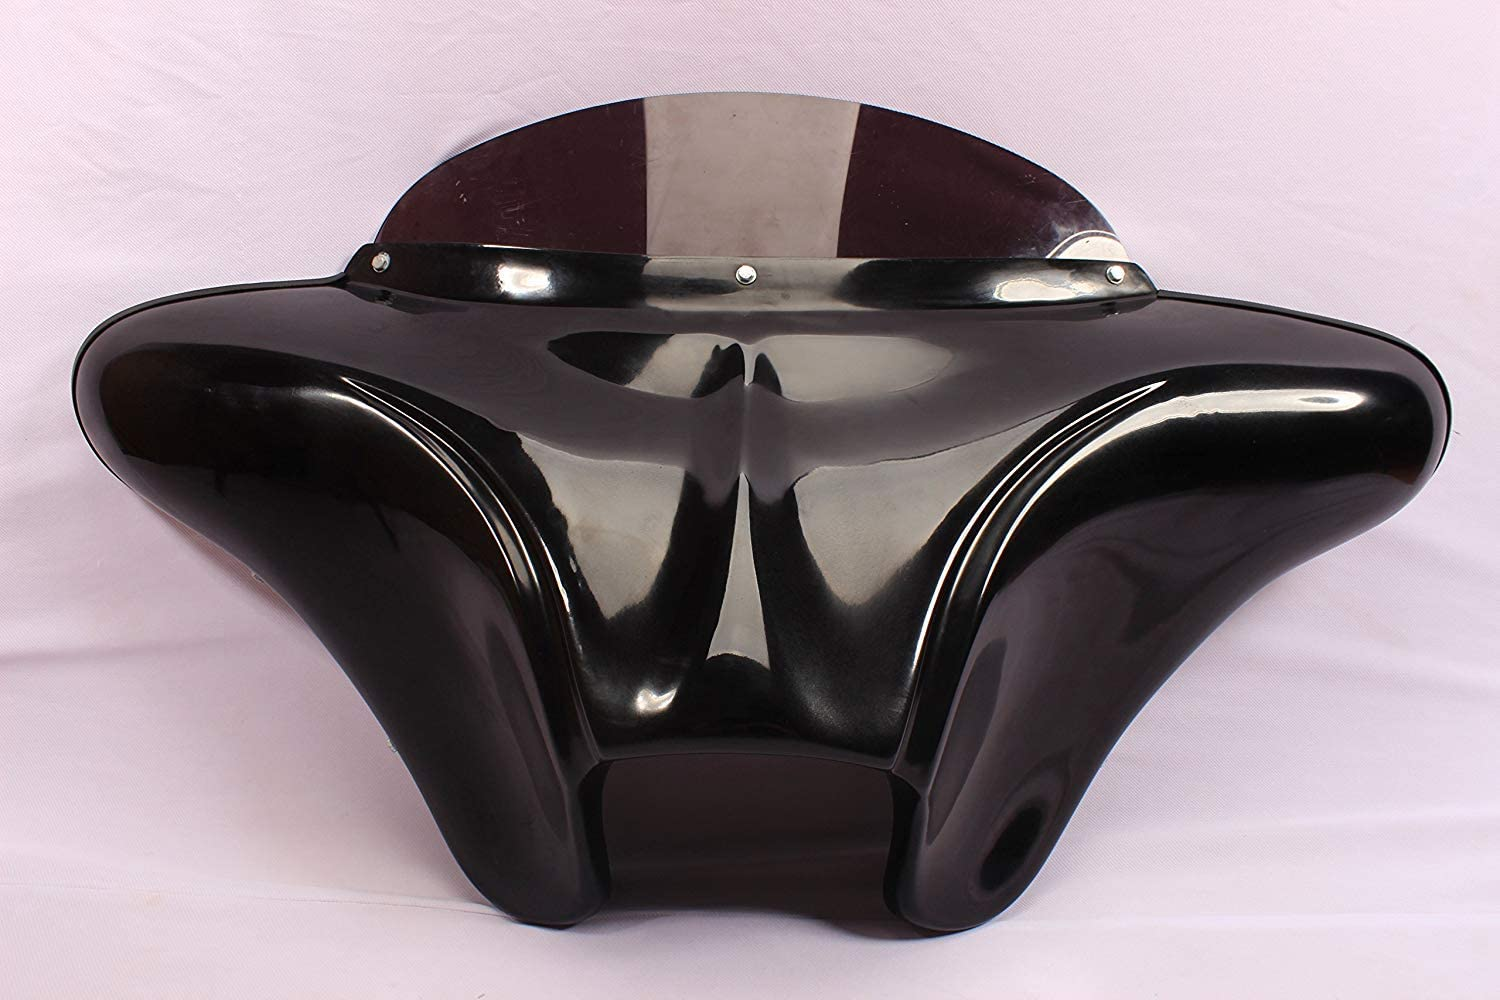 USA F10-4 GC CO DE 39 Batwing Fairing Windshield 4 Harley Sportster Bagger Super Low Iron 1200 883